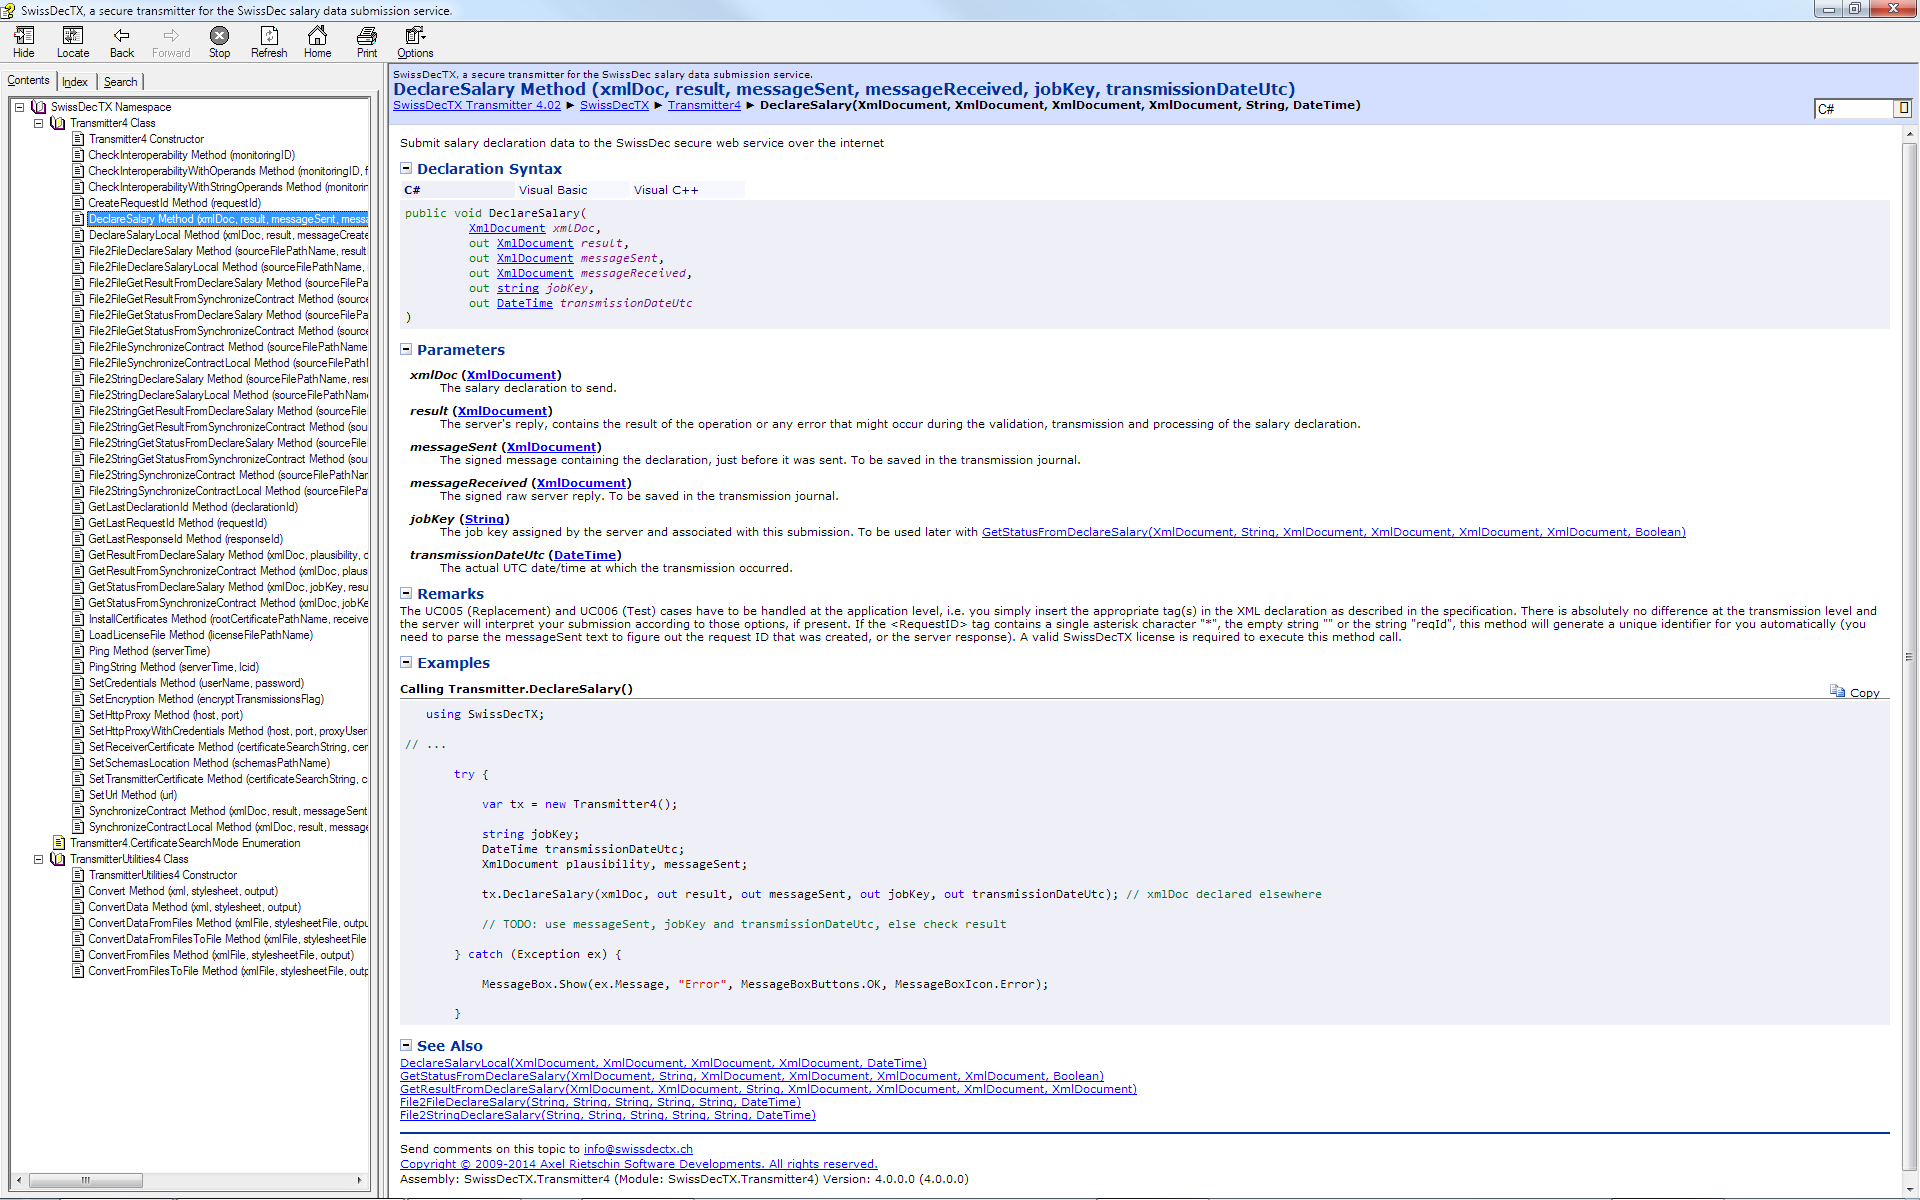 Screenshot of the programmer's help file (API documentation)